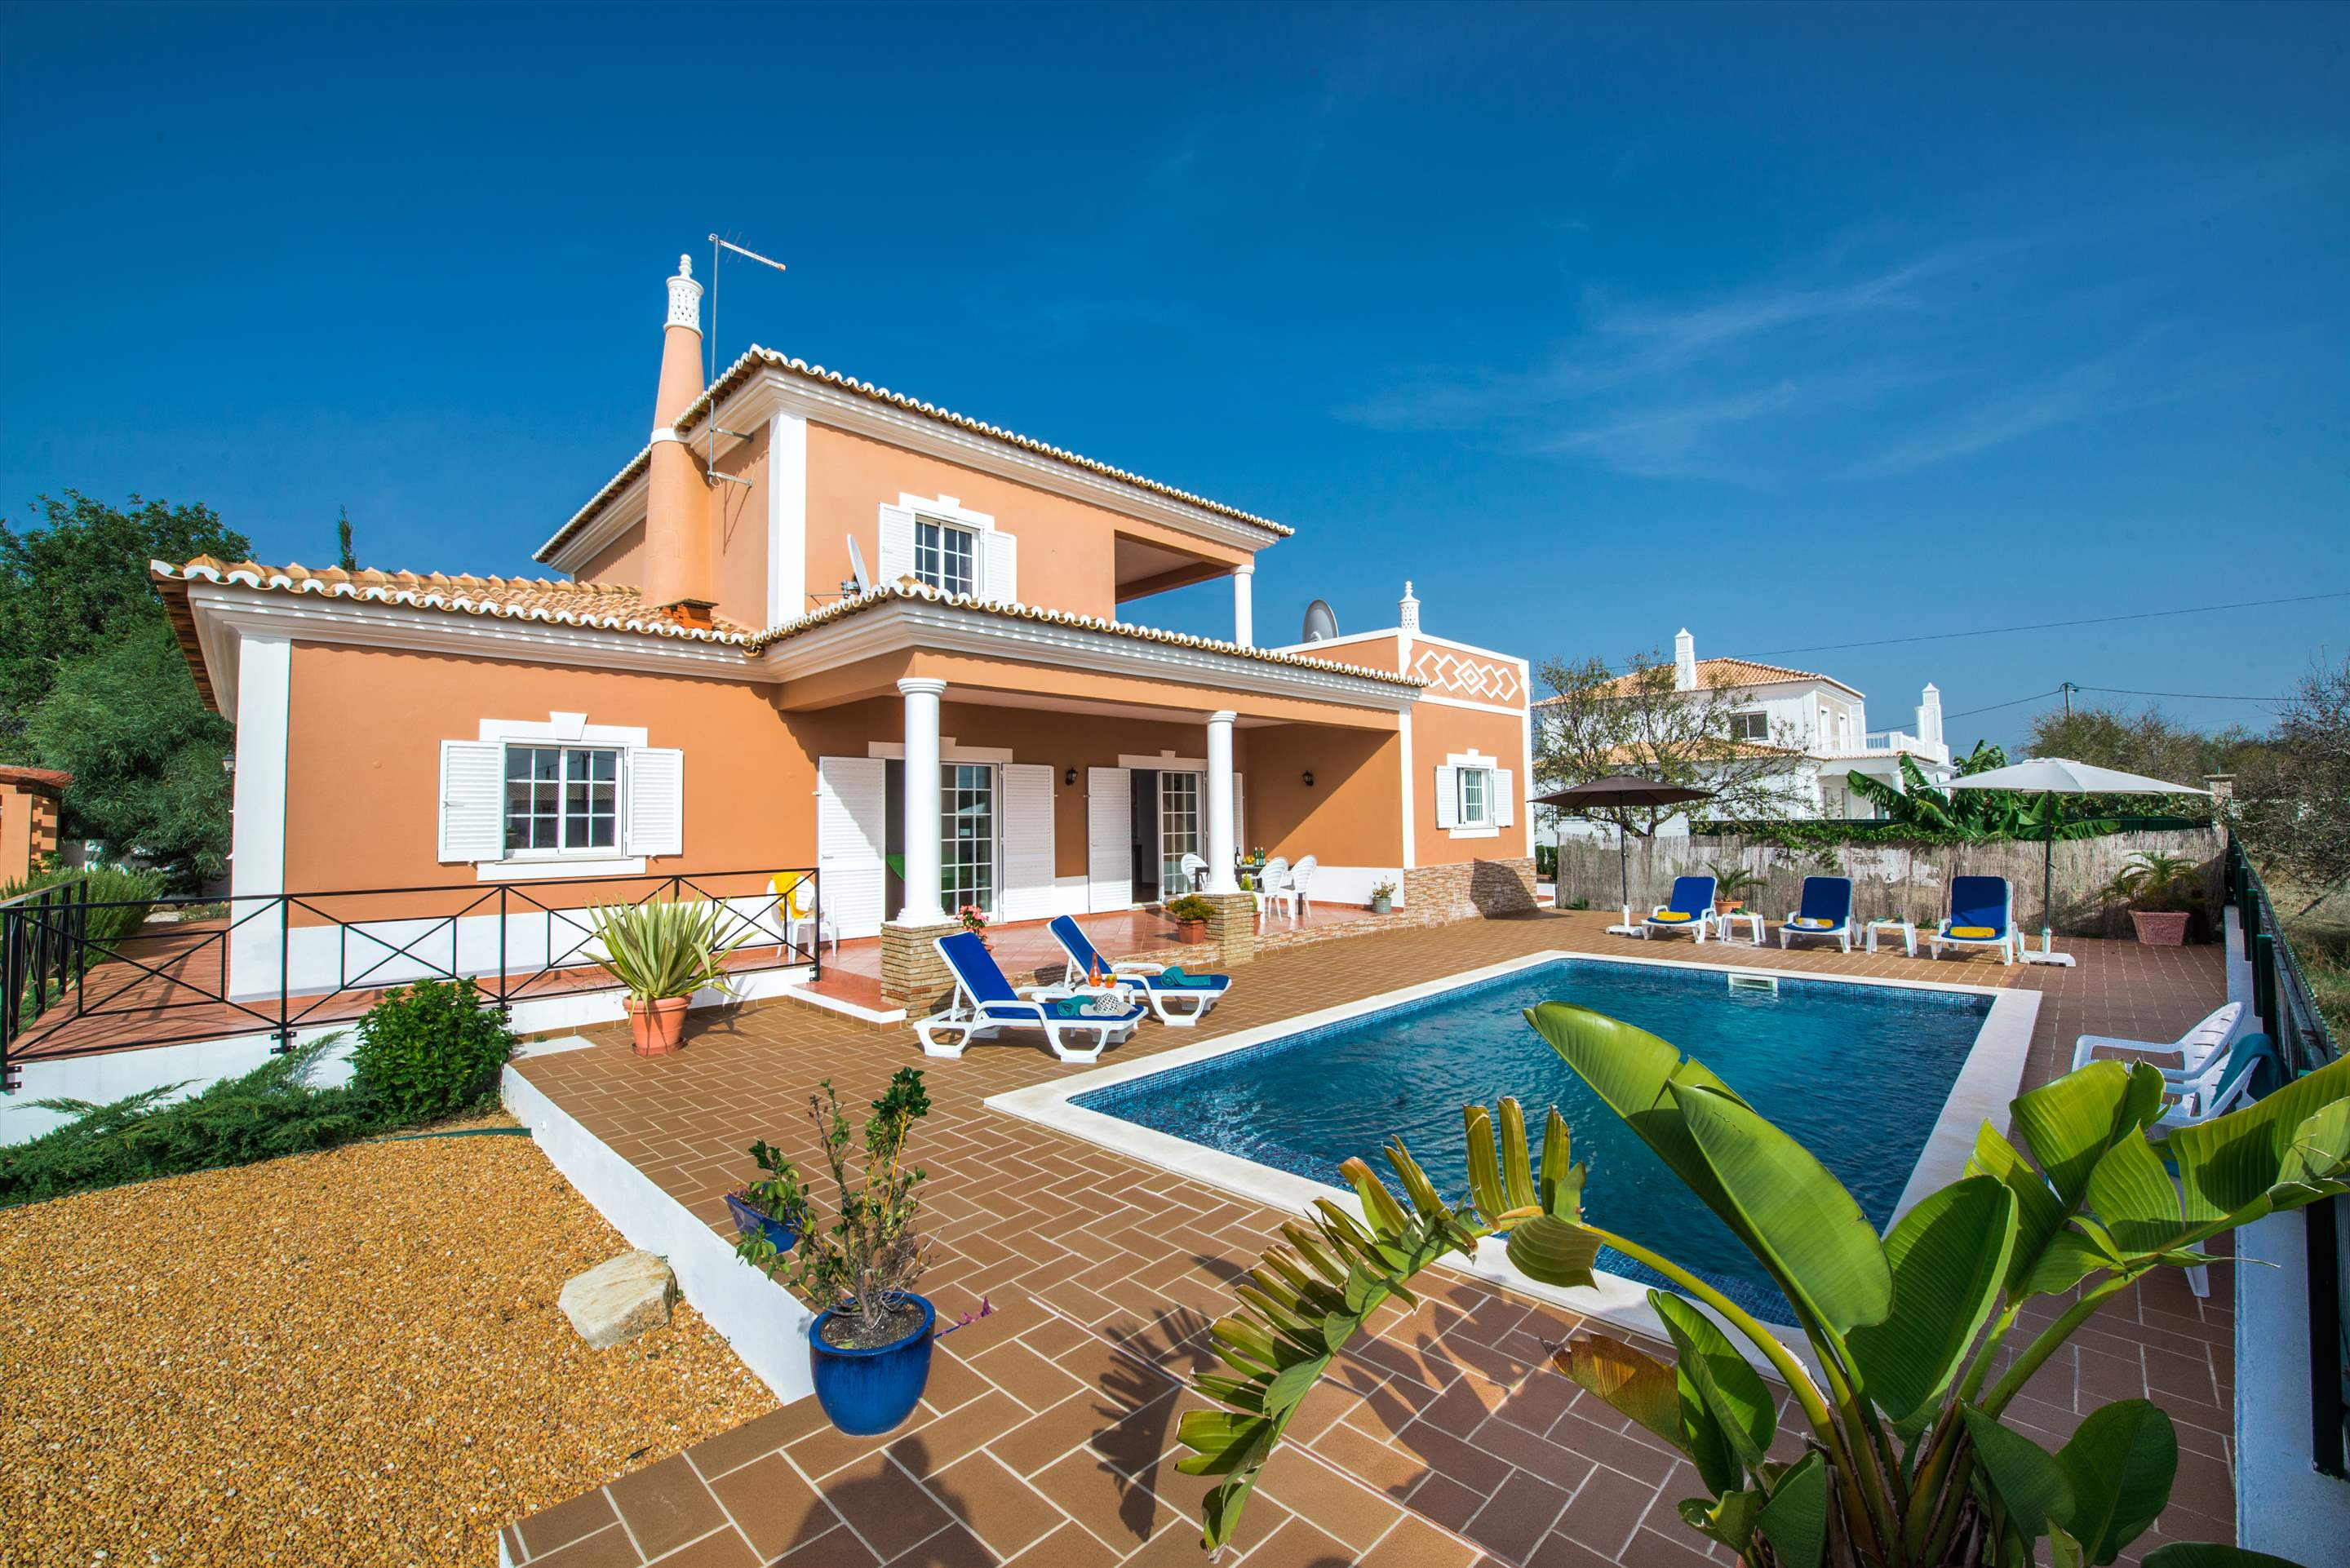 Casa Laura, 3 bedroom villa in Gale, Vale da Parra and Guia, Algarve Photo #1